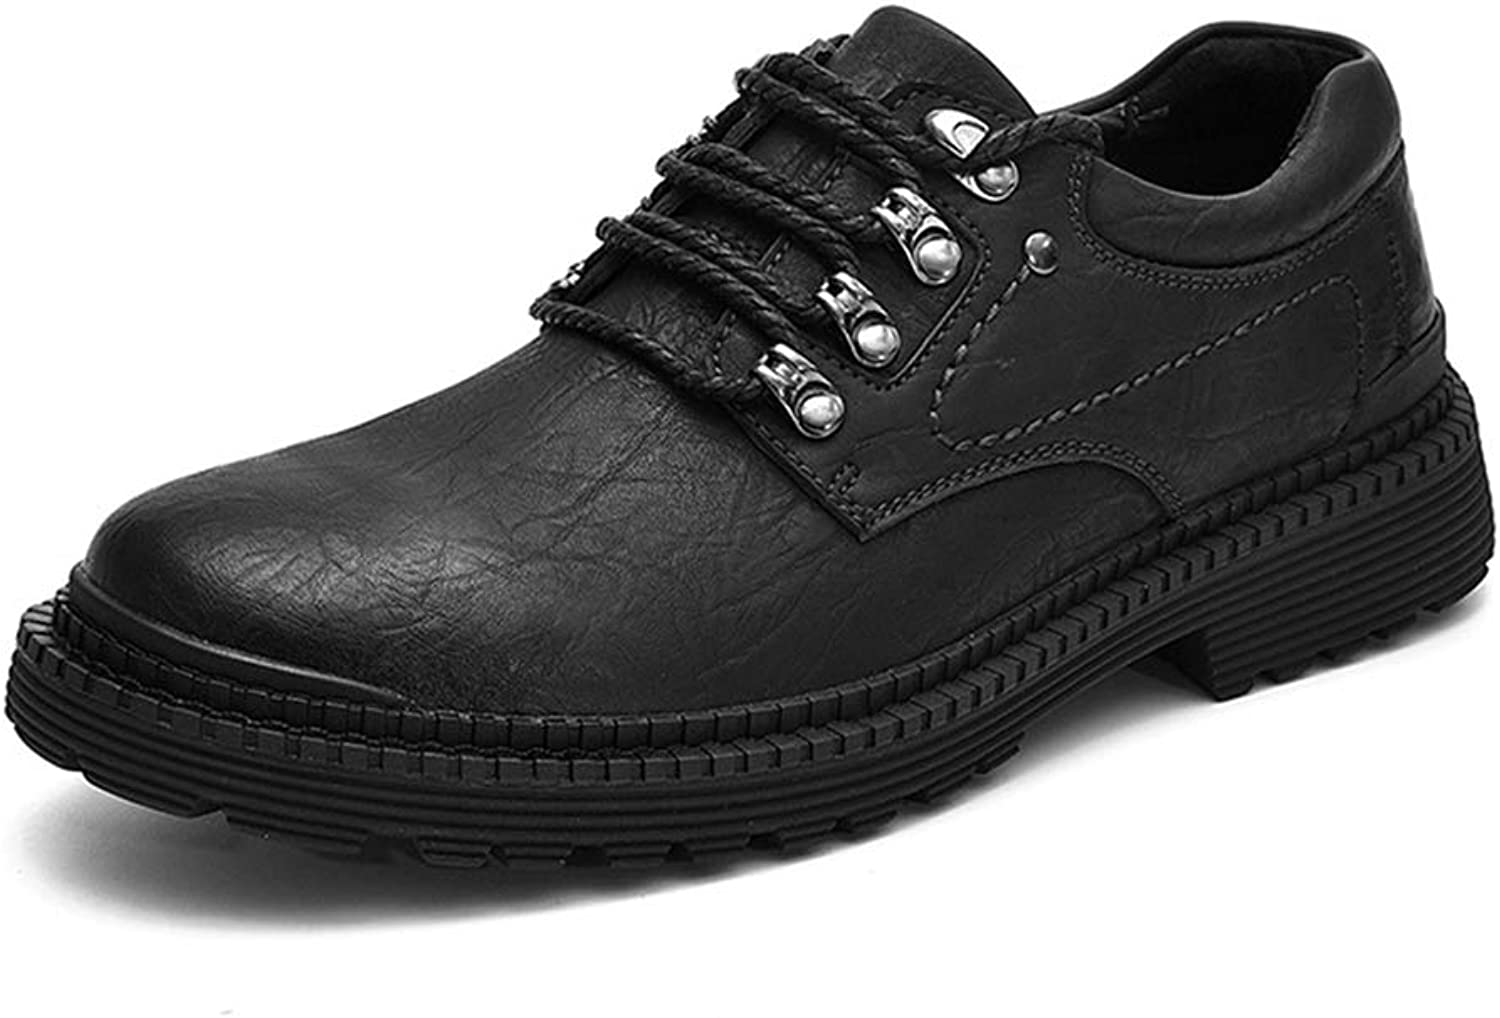 Phil Betty Mens Dress Lace Up Non-Slip Breathable Comfortable Oxford shoes